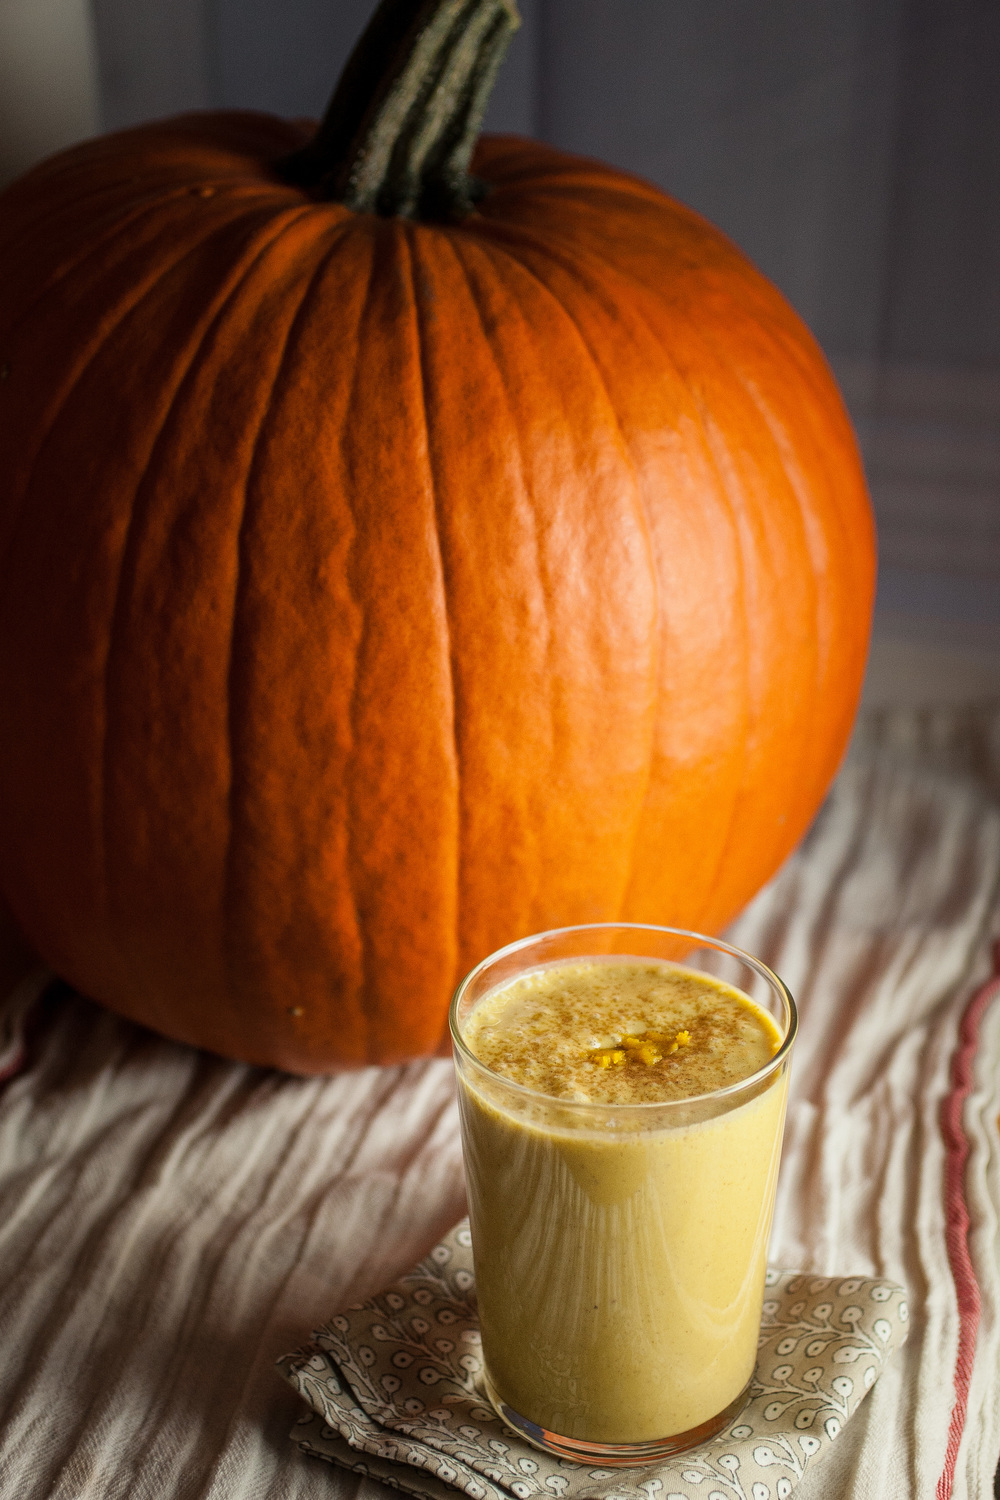 Produce On Parade - Spiced Pumpkin Eggnog - A thick and creamy, non-dairy pumpkin eggnog that's vegan and sweetened only with dates. You'll be amazed how incredible it is!